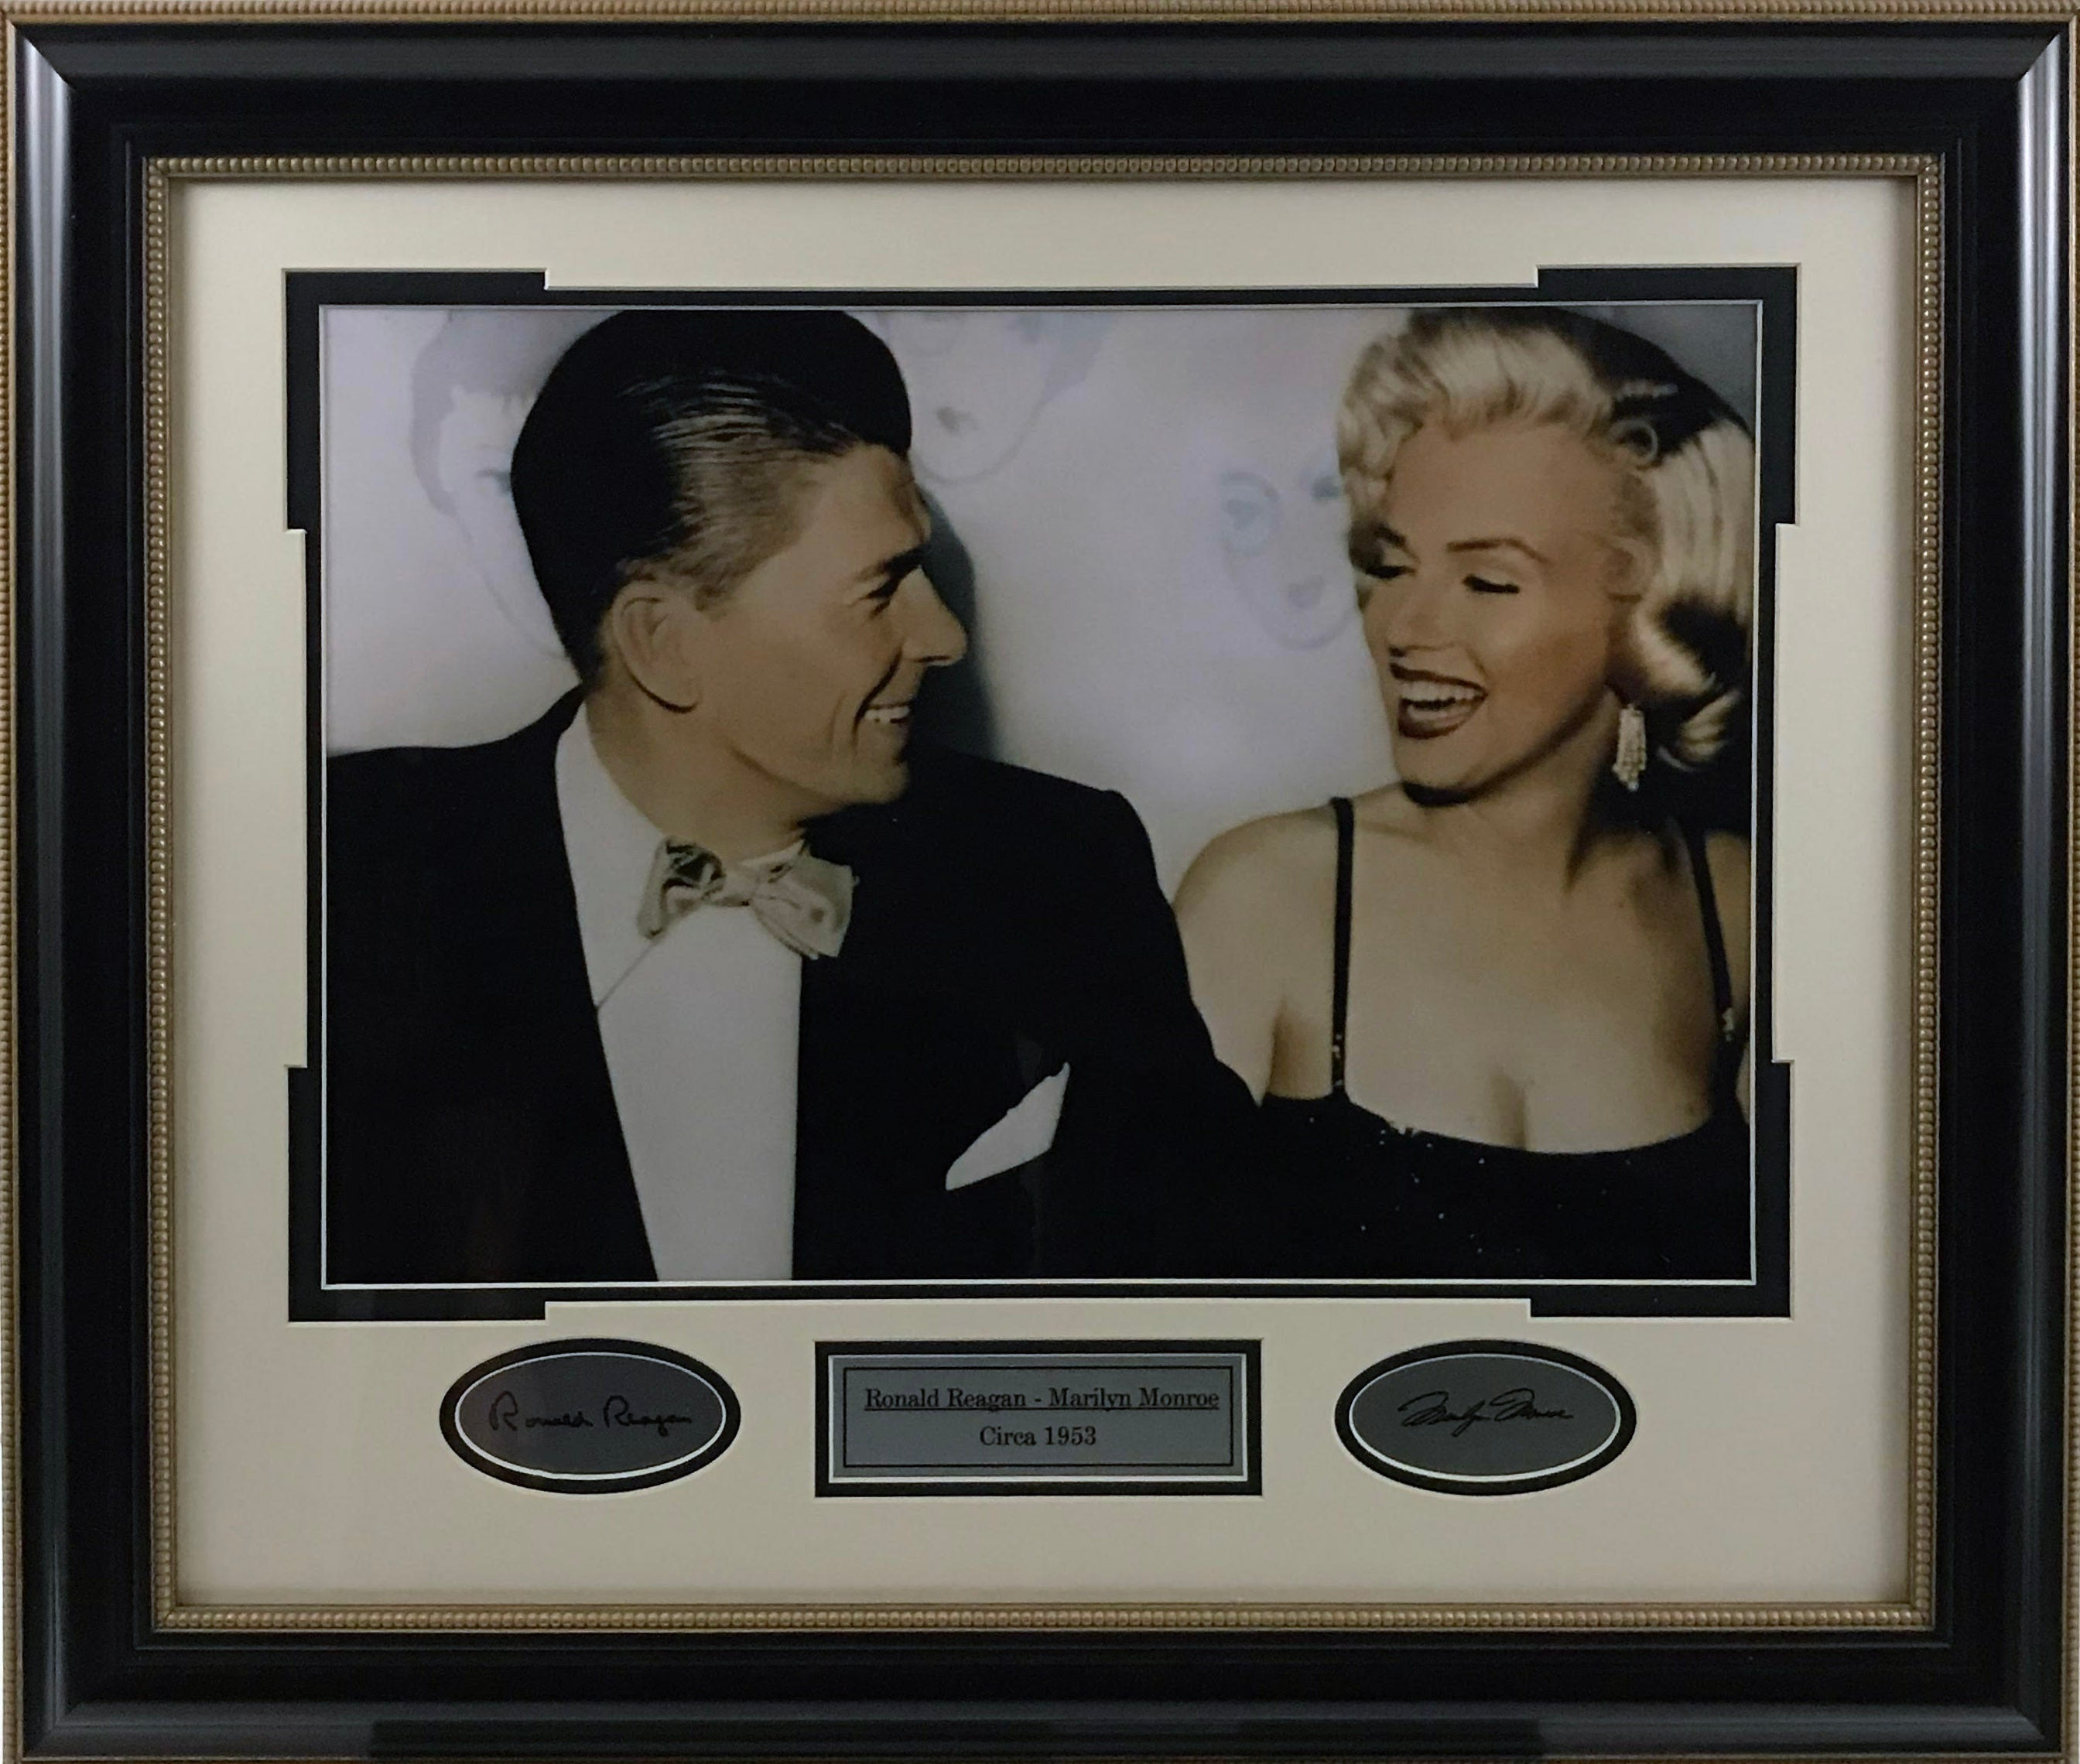 Ronald Reagan & Marilyn Monroe Vintage Framed Photo with Laser Signatures - Latitude Sports Marketing